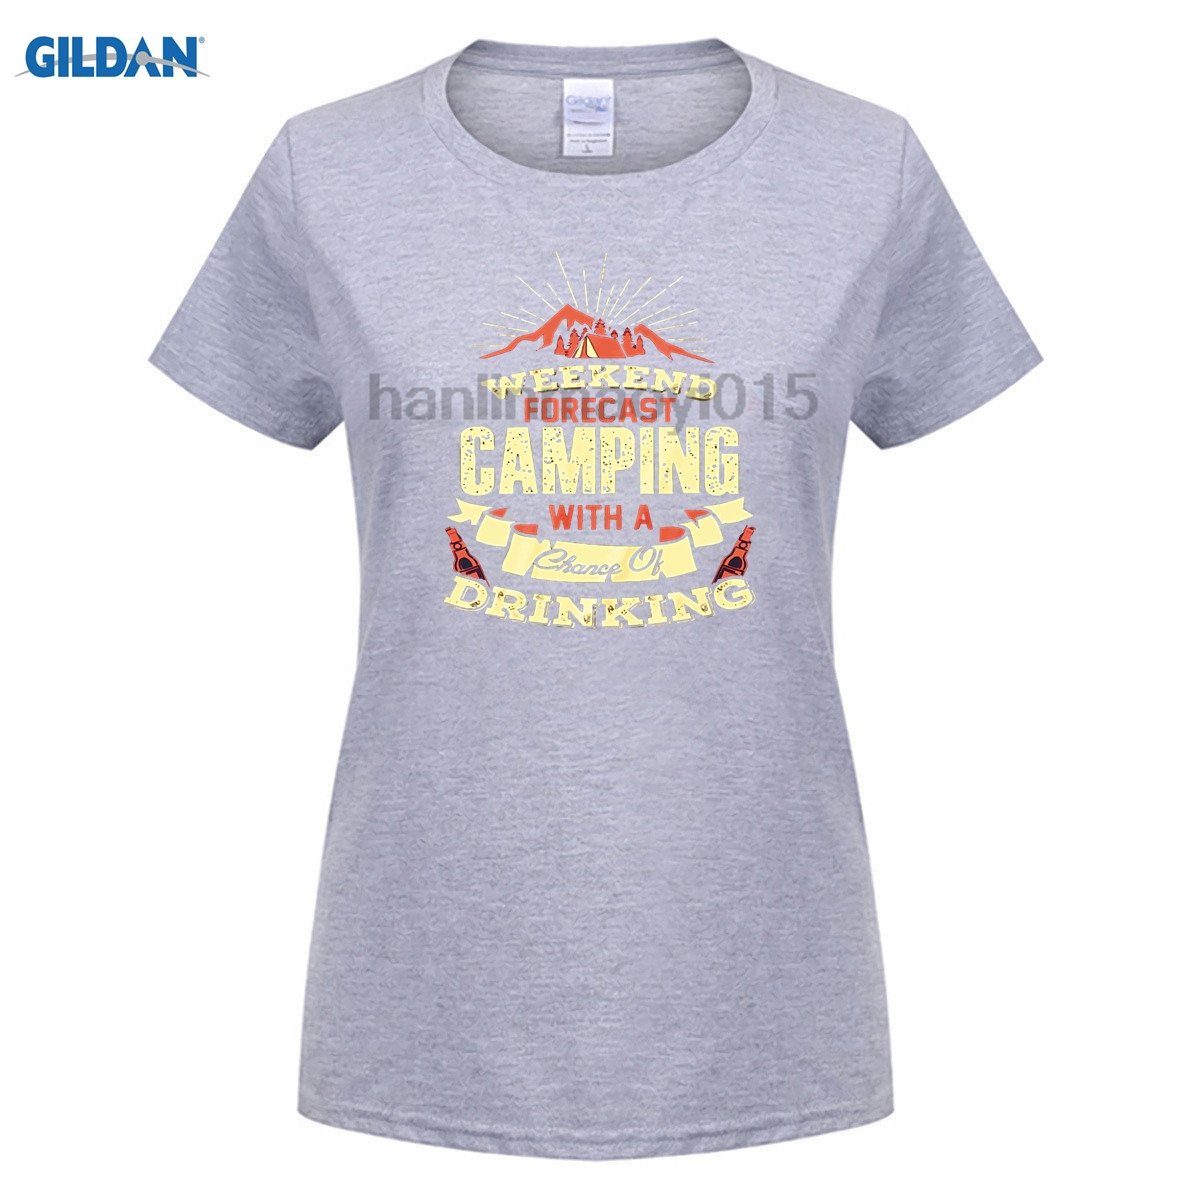 GILDAN printed T-shirt WHAT HAPPENS AROUND THE CAMPFIRE t-shirt for women ...